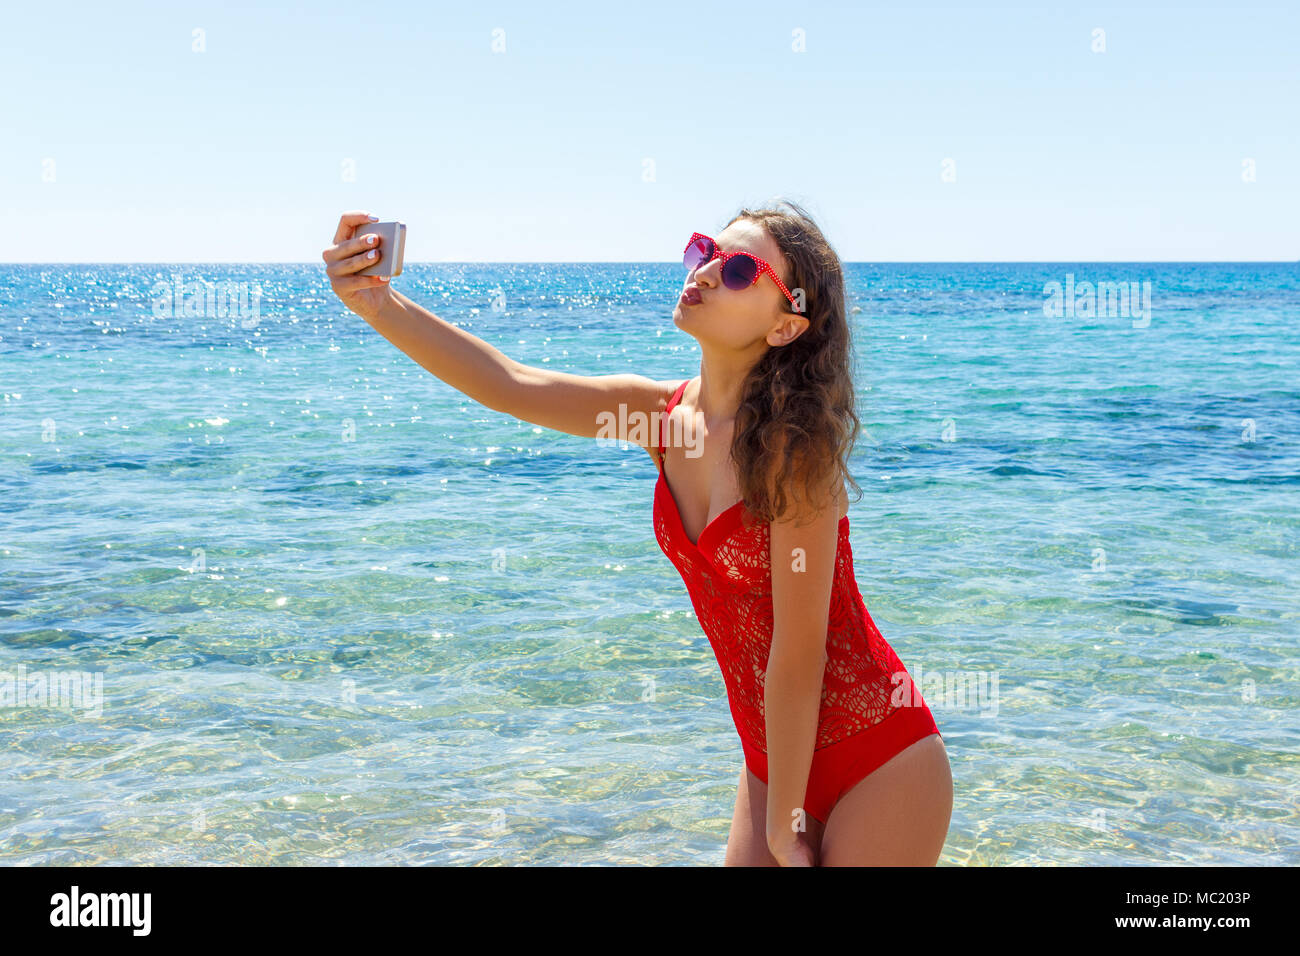 Summer beach vacation girl taking fun mobile selfie photo with smartphone. Girl wearing red sunglasses posing for selfie. - Stock Image